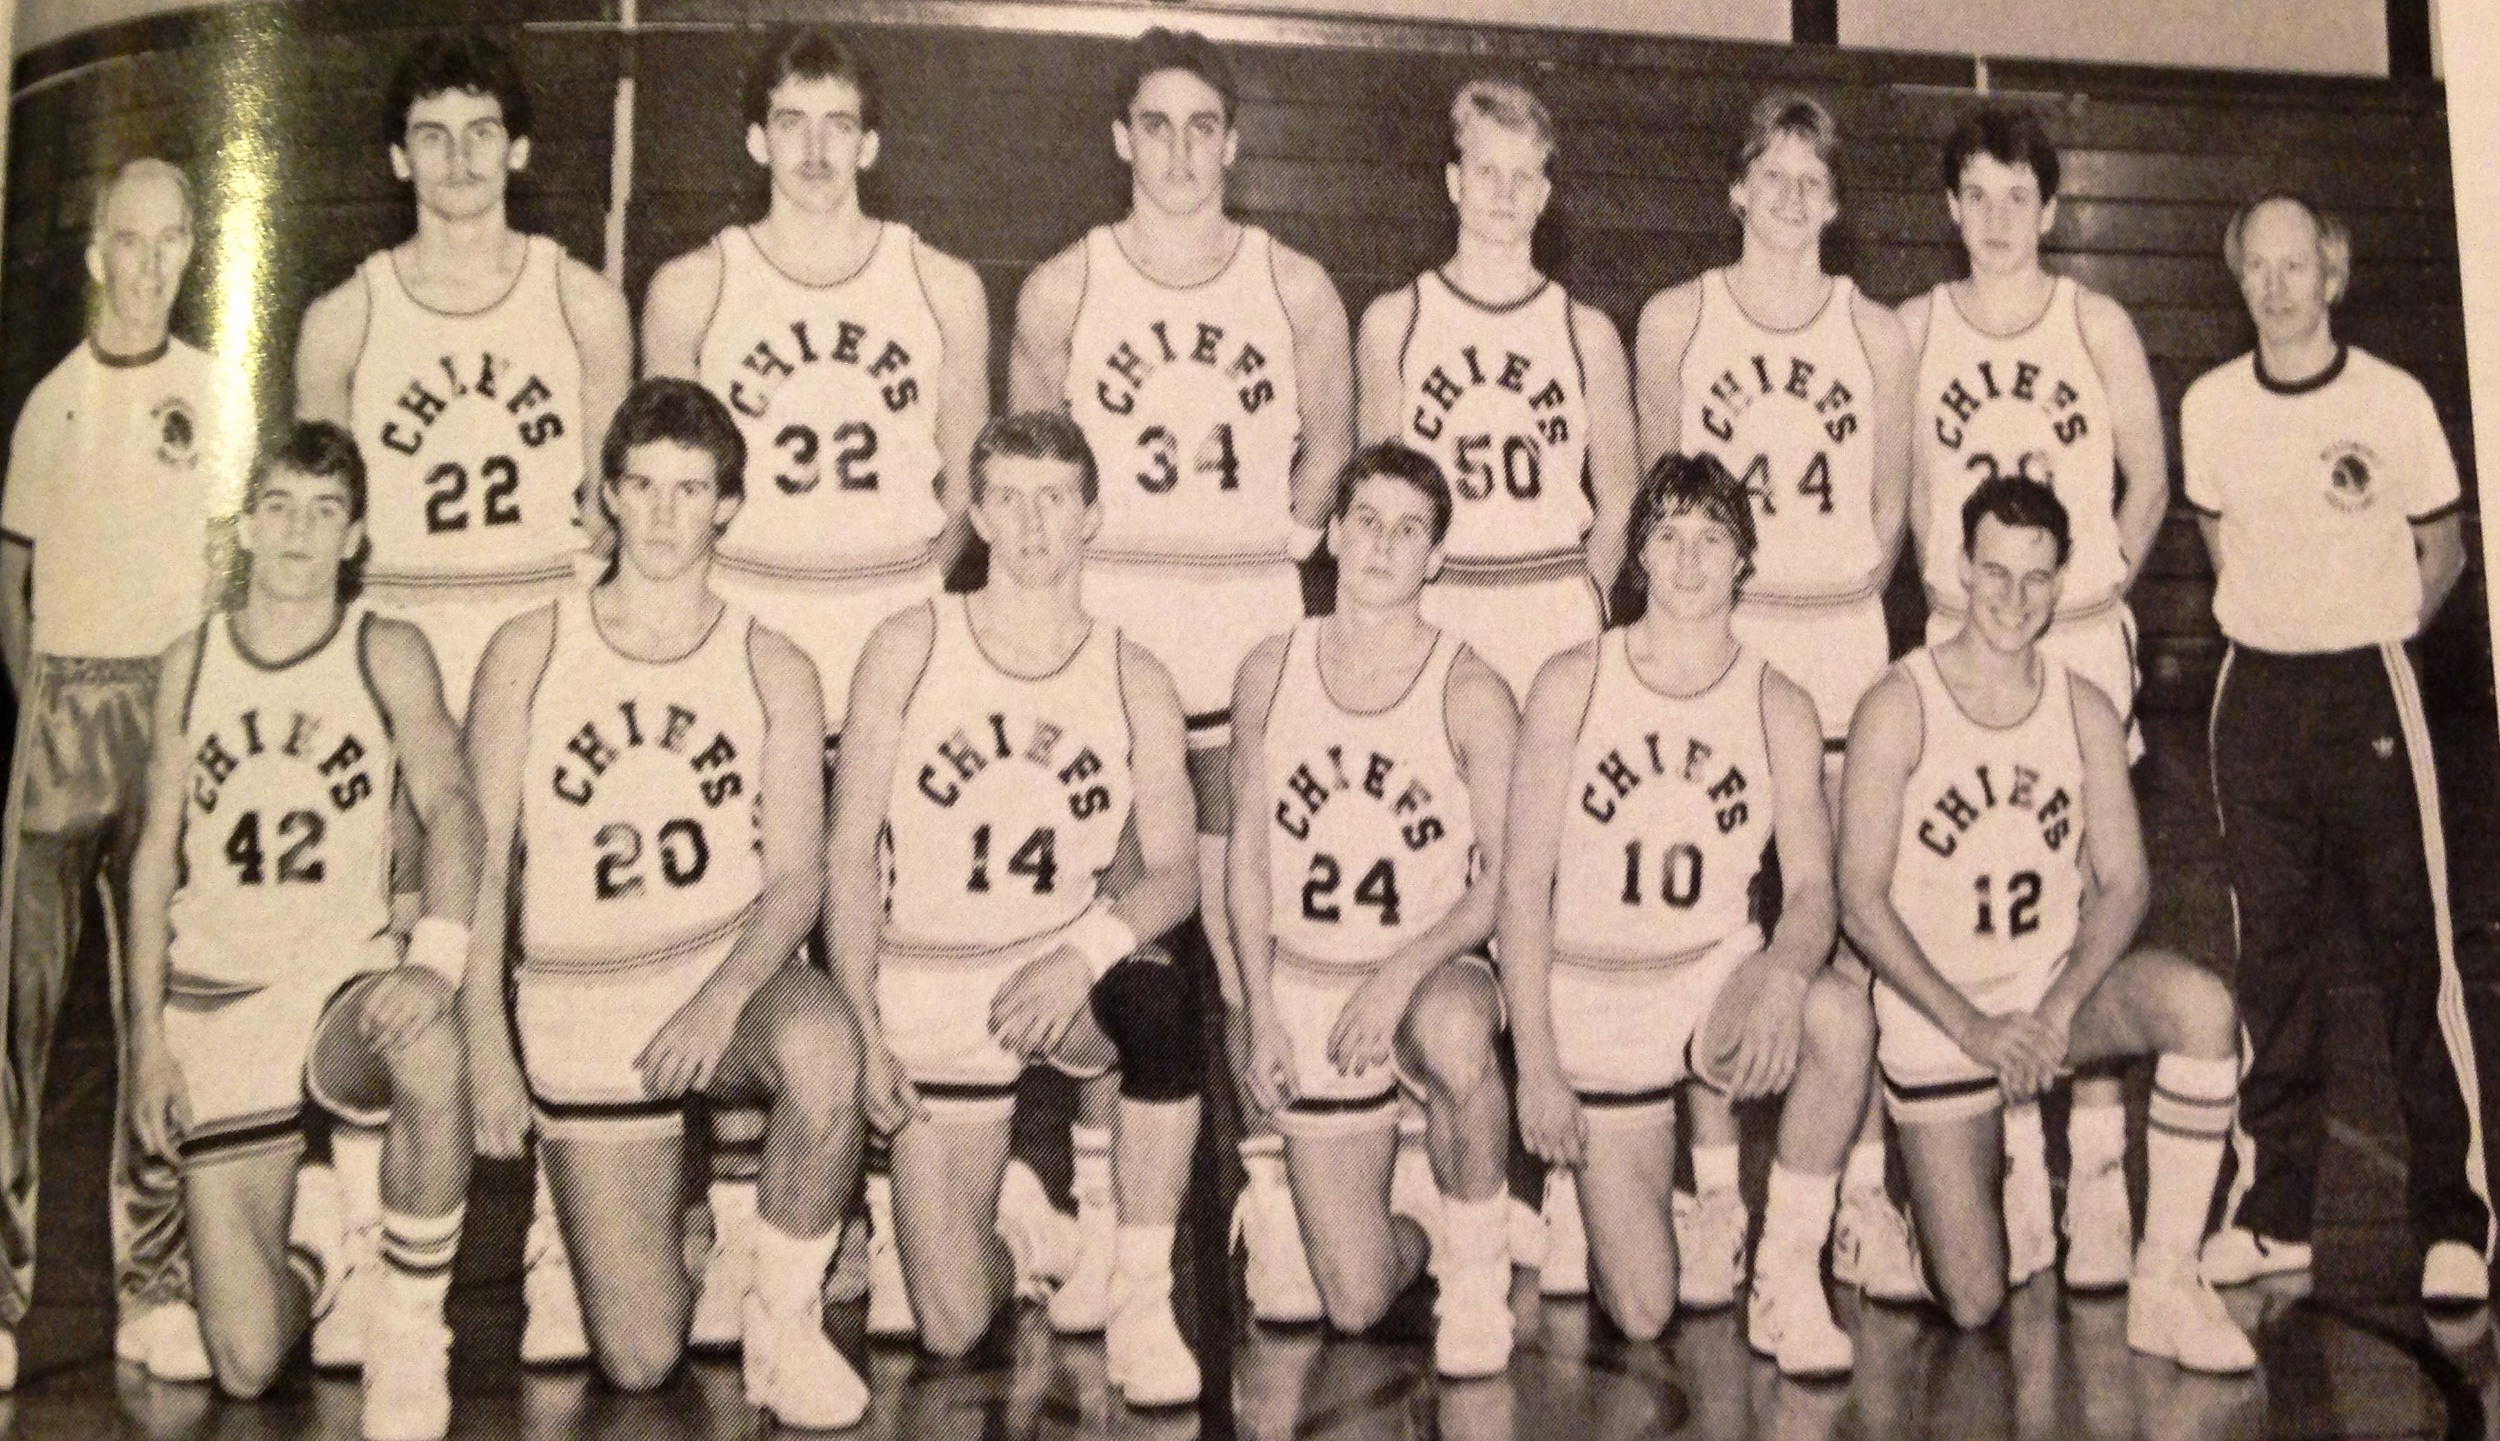 Top Row: Coach Phil Hull, Kevin Kelly, Jon Huber, Keith Coleman, Jamey Clark, Eric Knowles, Mike Brunelle; Bottom Row: Blair Eastman, John Roberts, Dan Baker, Matt Evans, Tom Dodds, Arturo Martinez